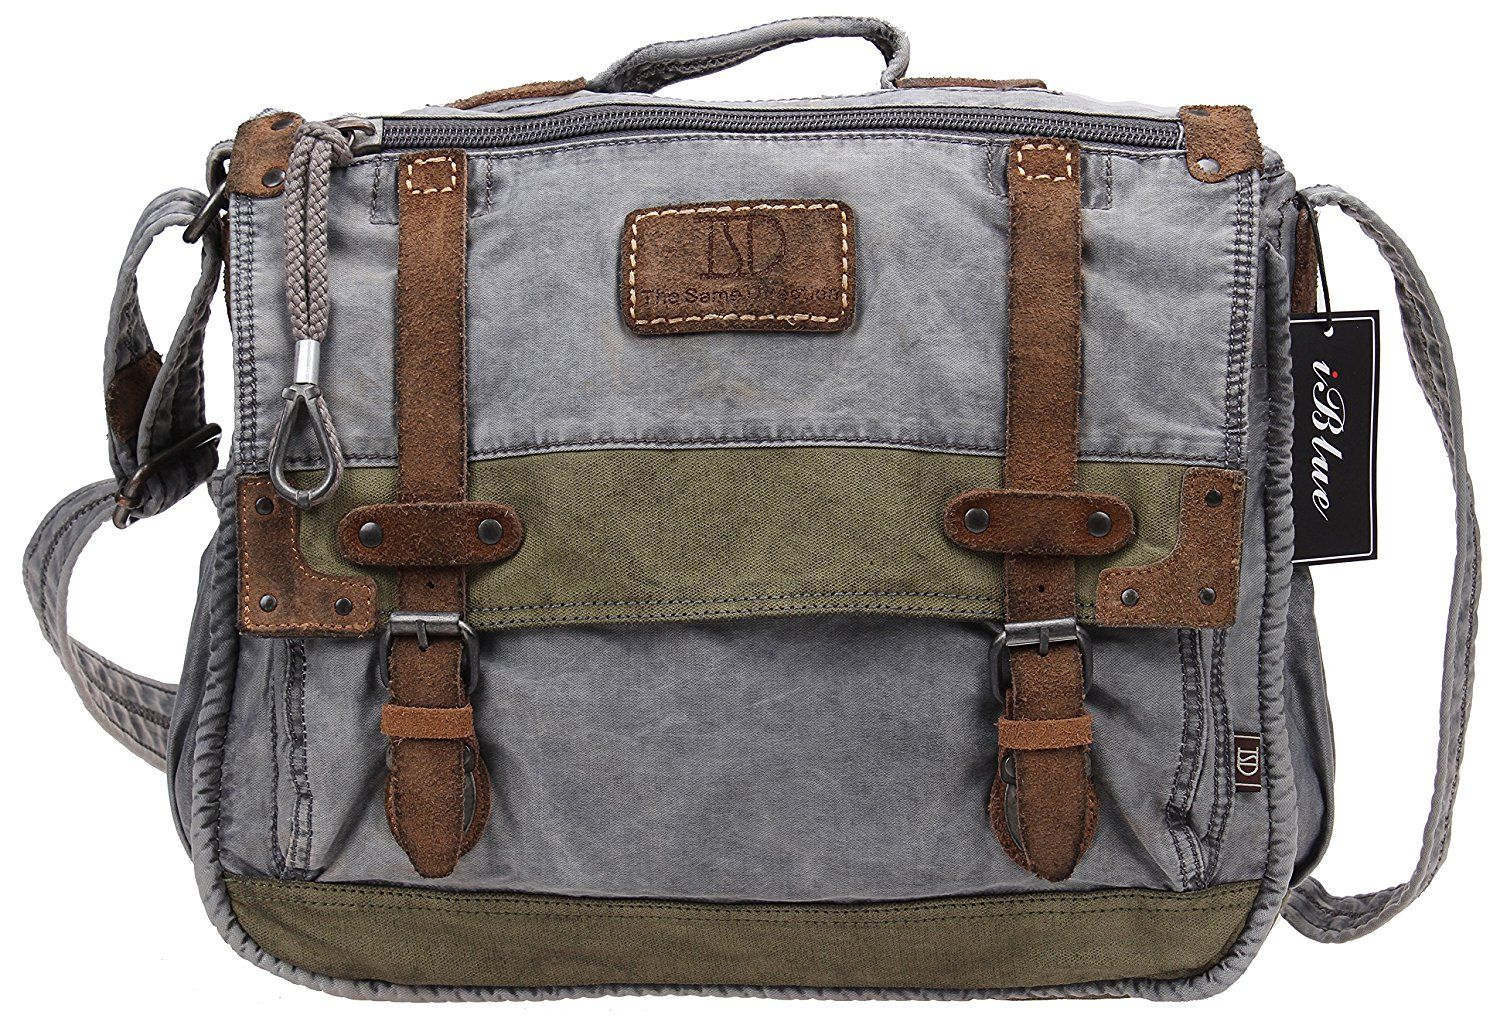 538ccfe5a87 Iblue Mens Canvas Laptop Messenger Crossbody Handbag Satchel Tote College  Book Bag 15.5 In